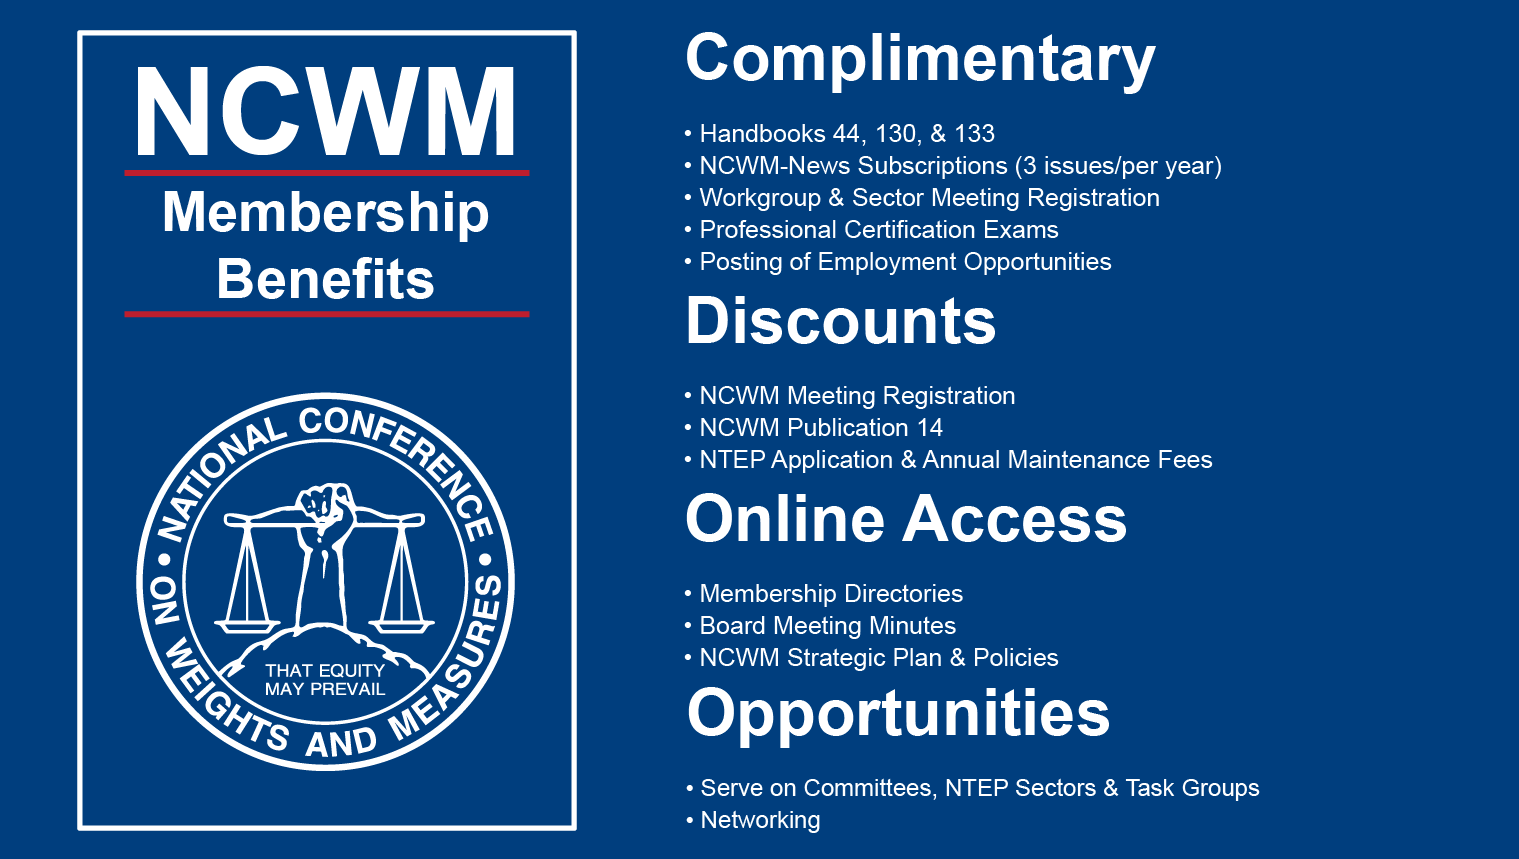 NCWM membership benefits information